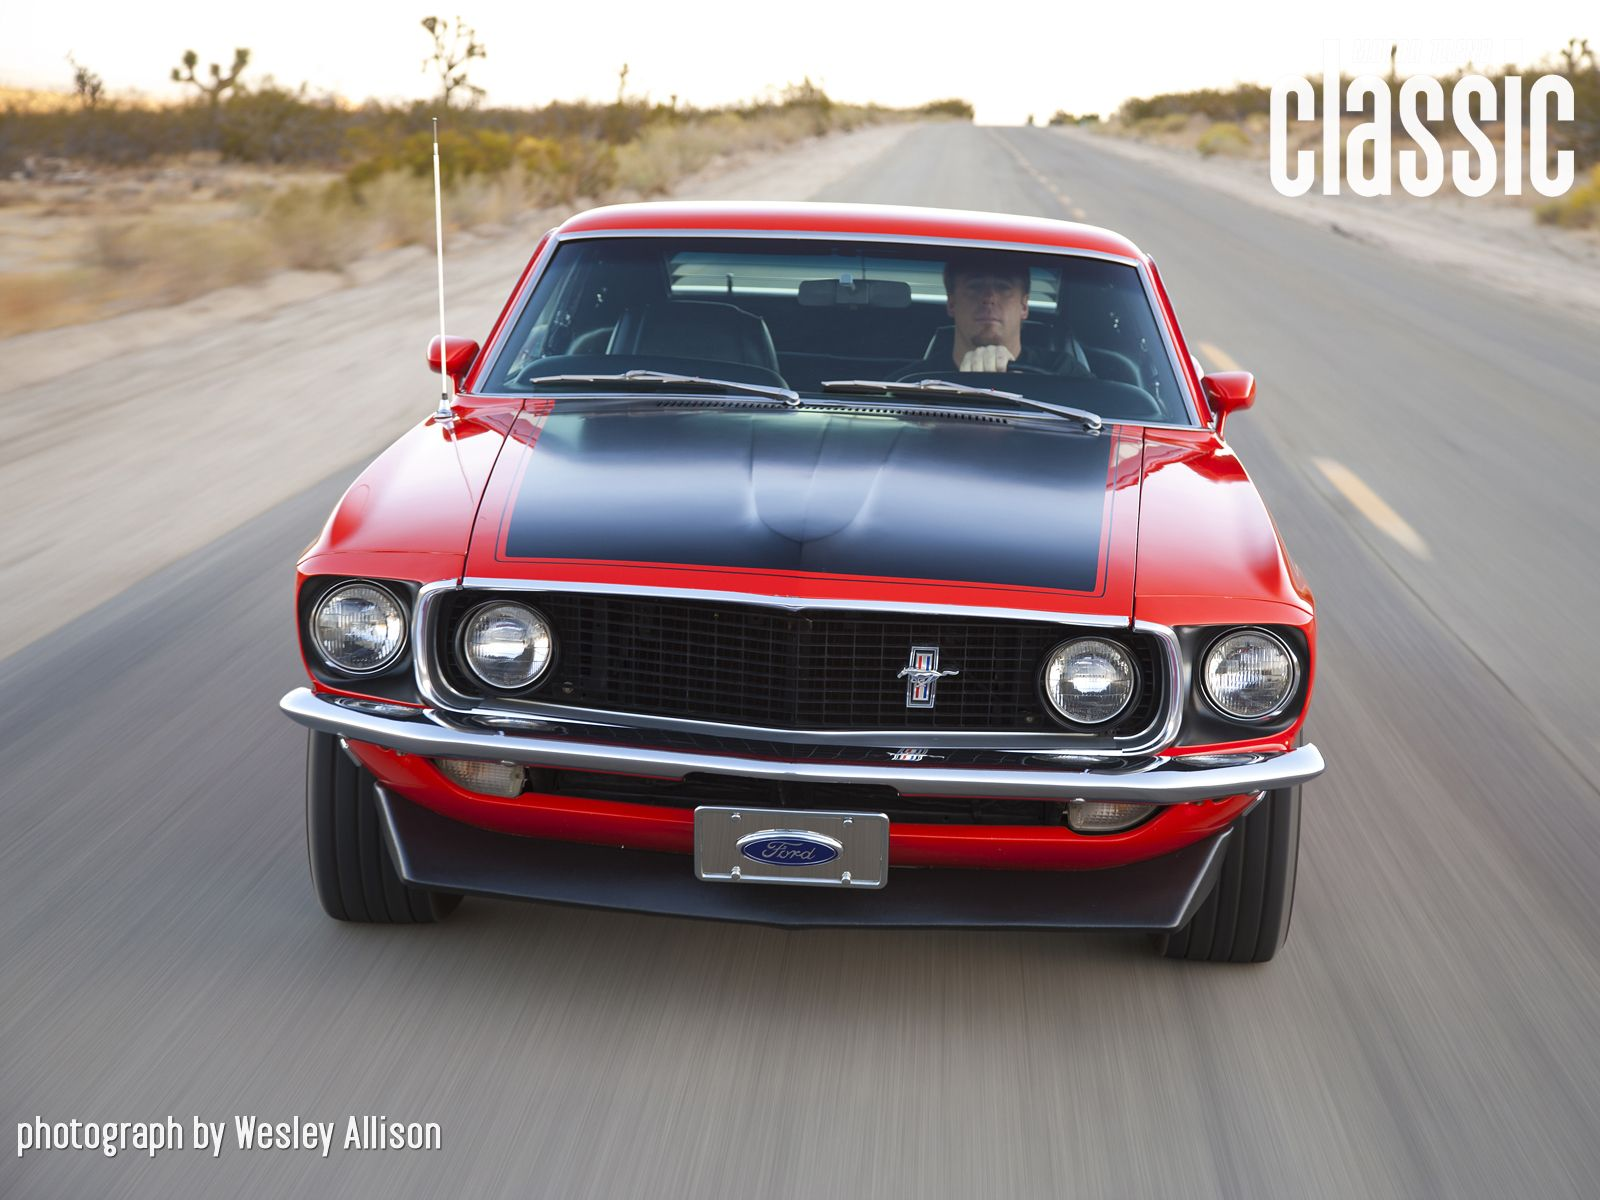 1969 Ford Mustang Boss 302 Wallpaper Gallery   Motor Trend Classic 1600x1200